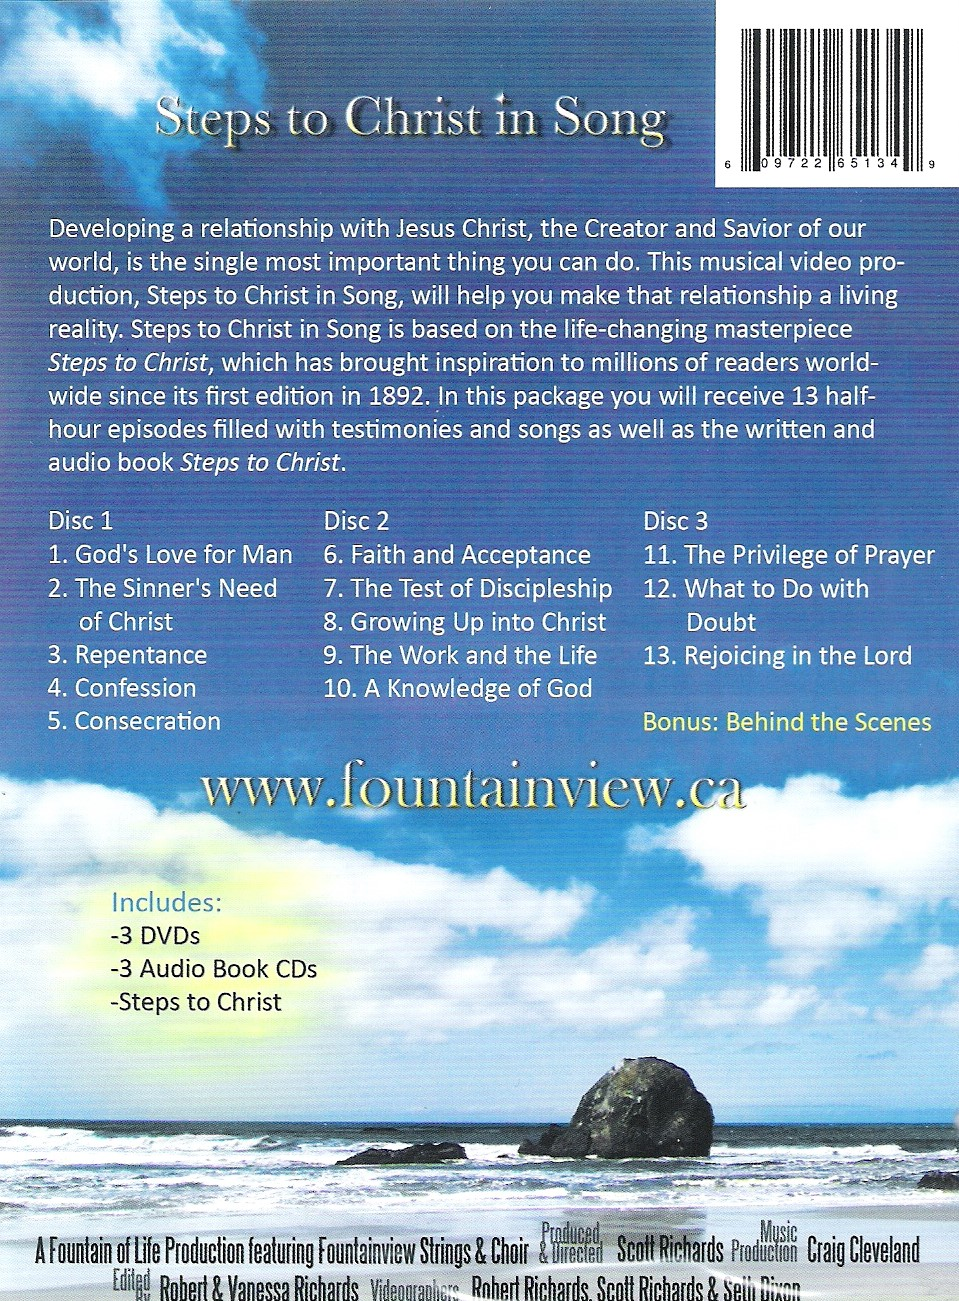 Steps to Christ in Song